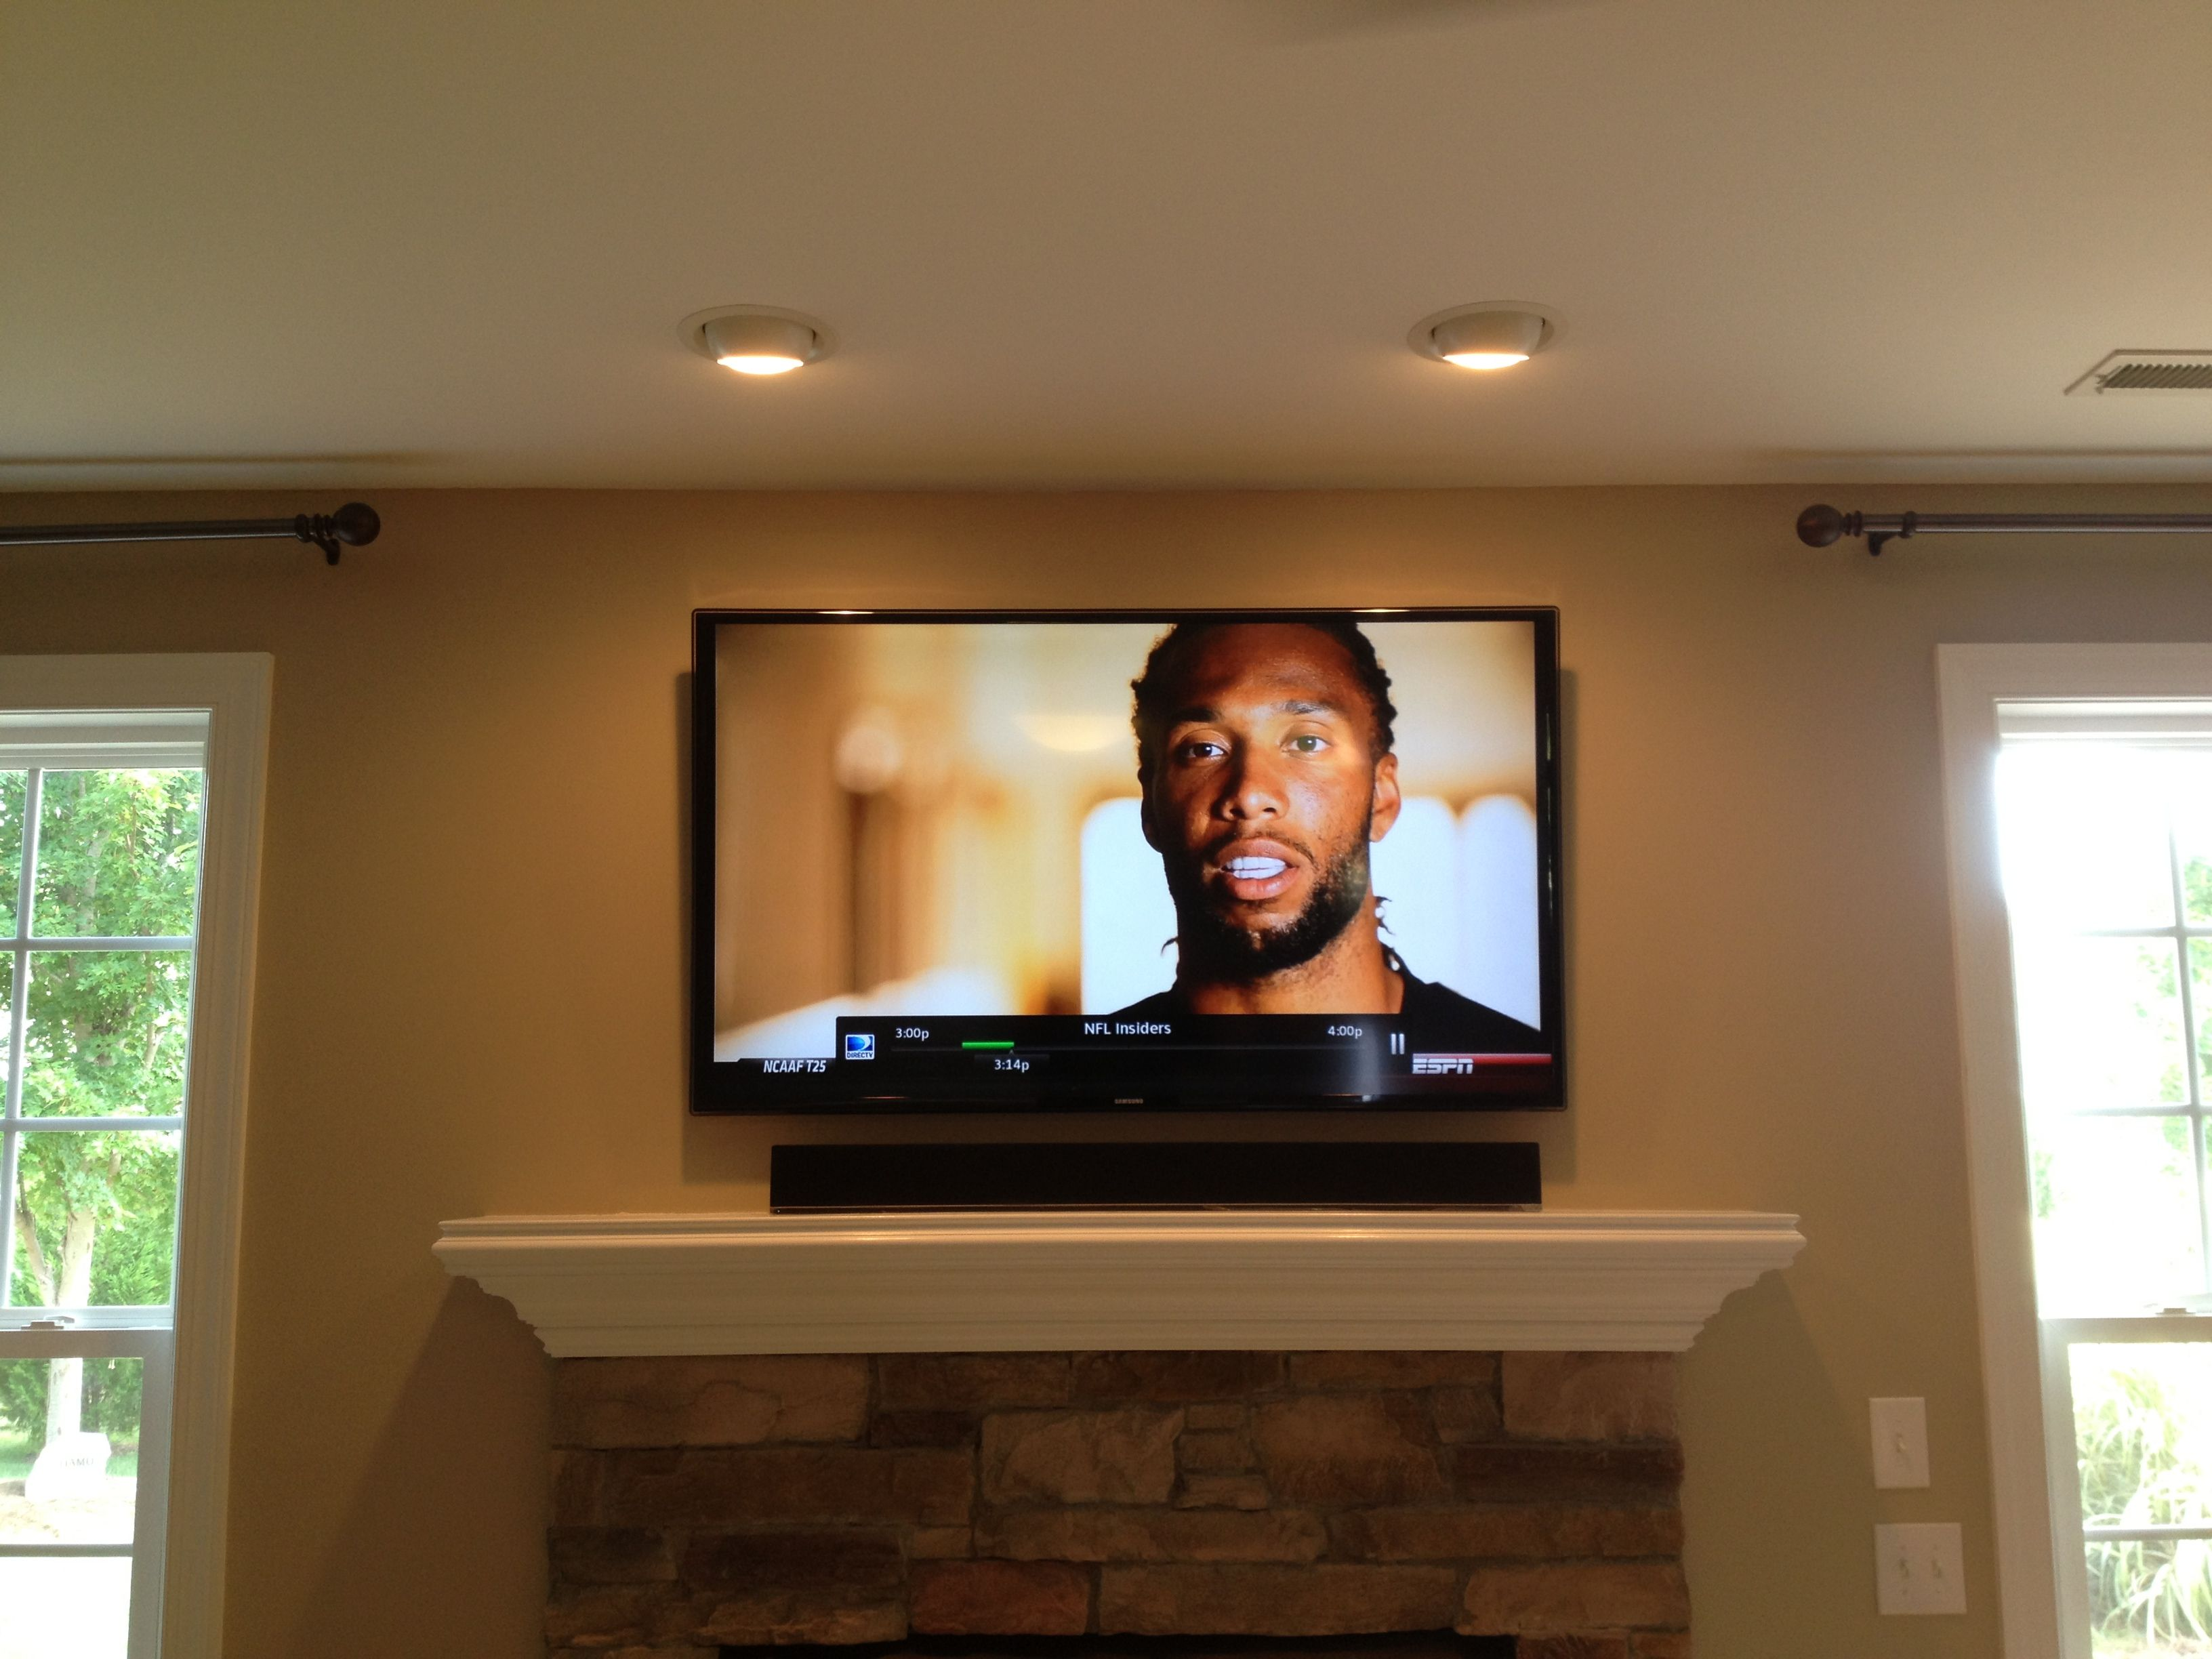 Charlotte Home Theater Installation Projector Surround Wiring Tv Mounting Flatscreen Speaker 704 905 2965